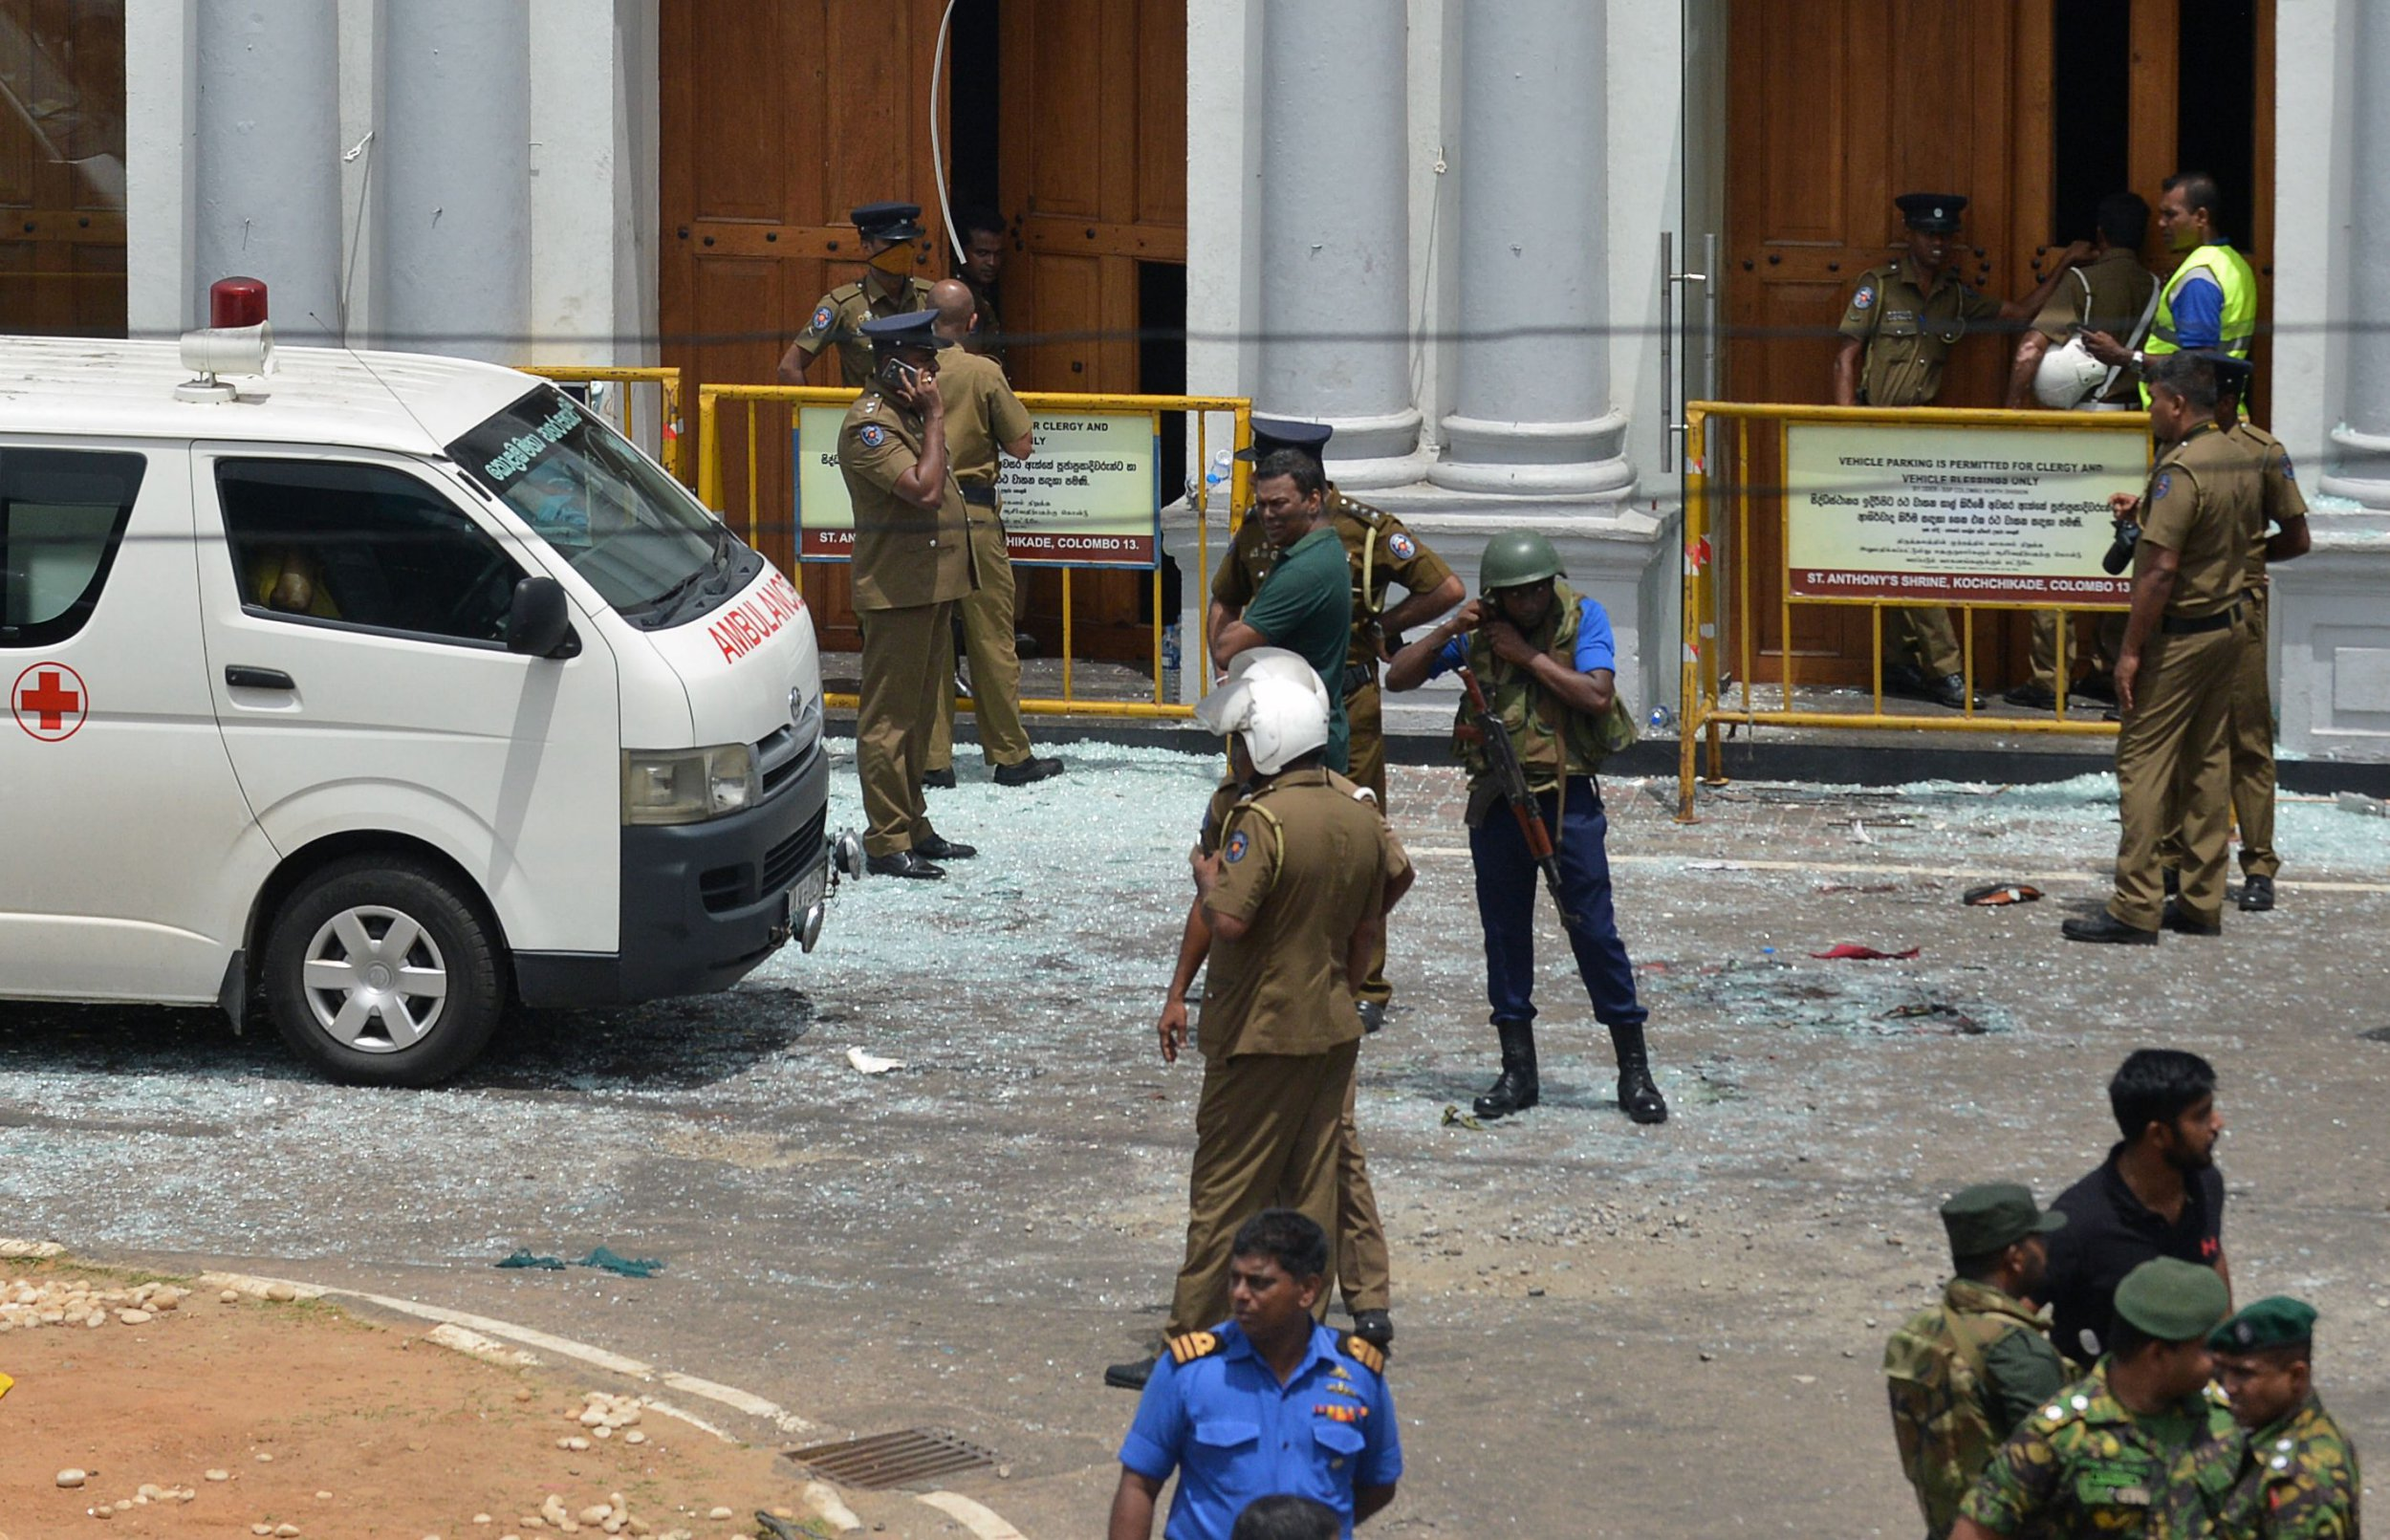 Sri Lankan security personnel stand next to an ambulance outside St. Anthony's Shrine in Kochchikade in Colombo on April 21, 2019 following a blast at the church. - At least 42 people were killed April 21 in a string of blasts at hotels and churches in Sri Lanka as worshippers attended Easter services, a police official told AFP. (Photo by ISHARA S. KODIKARA / AFP)ISHARA S. KODIKARA/AFP/Getty Images